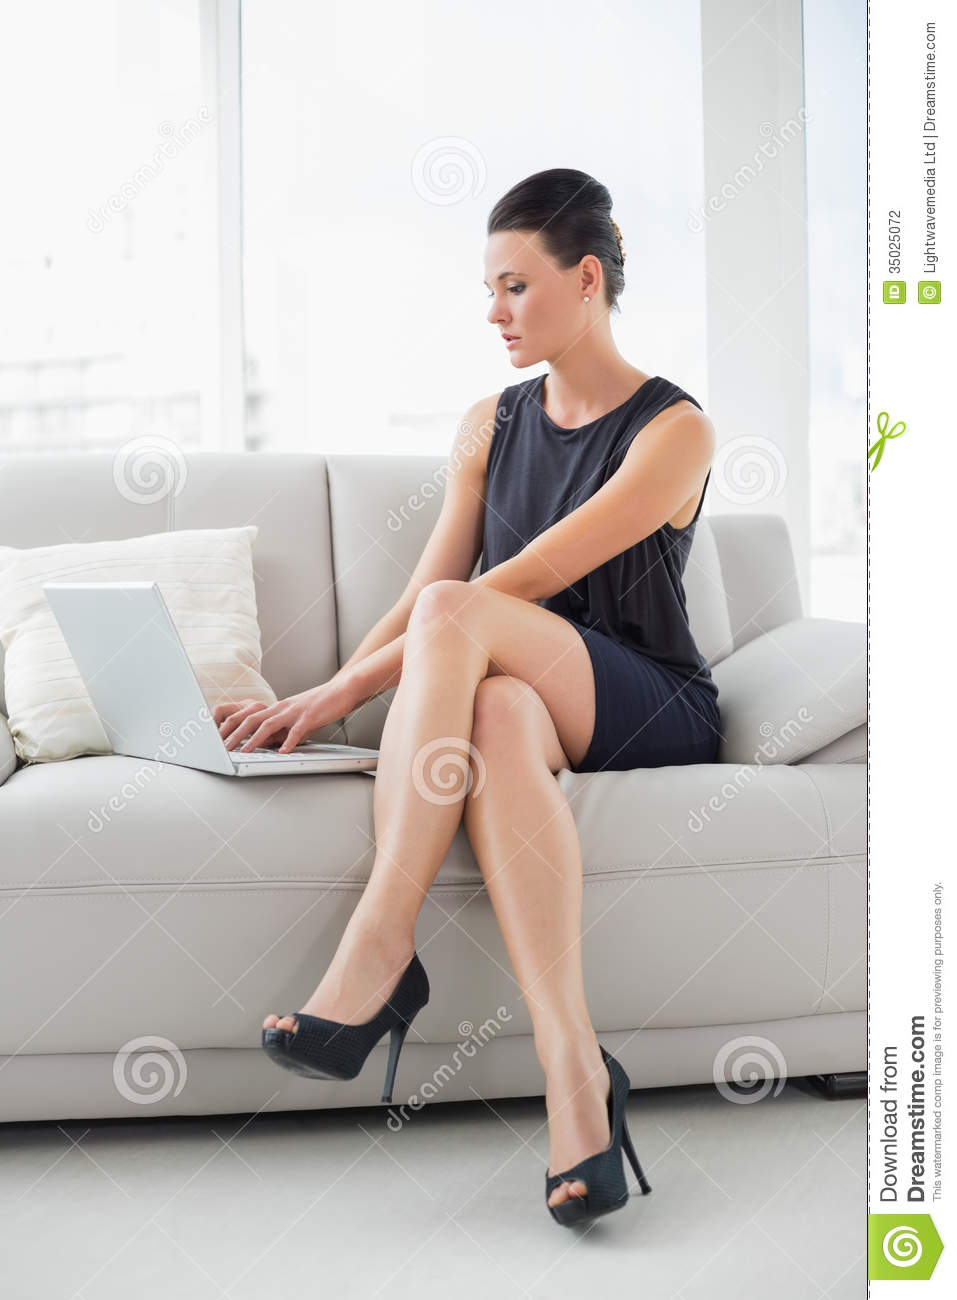 Beautiful Well Dressed Woman Using Laptop On Sofa Stock  : beautiful well dressed woman using laptop sofa full length young bright home 35025072 from www.dreamstime.com size 957 x 1300 jpeg 86kB